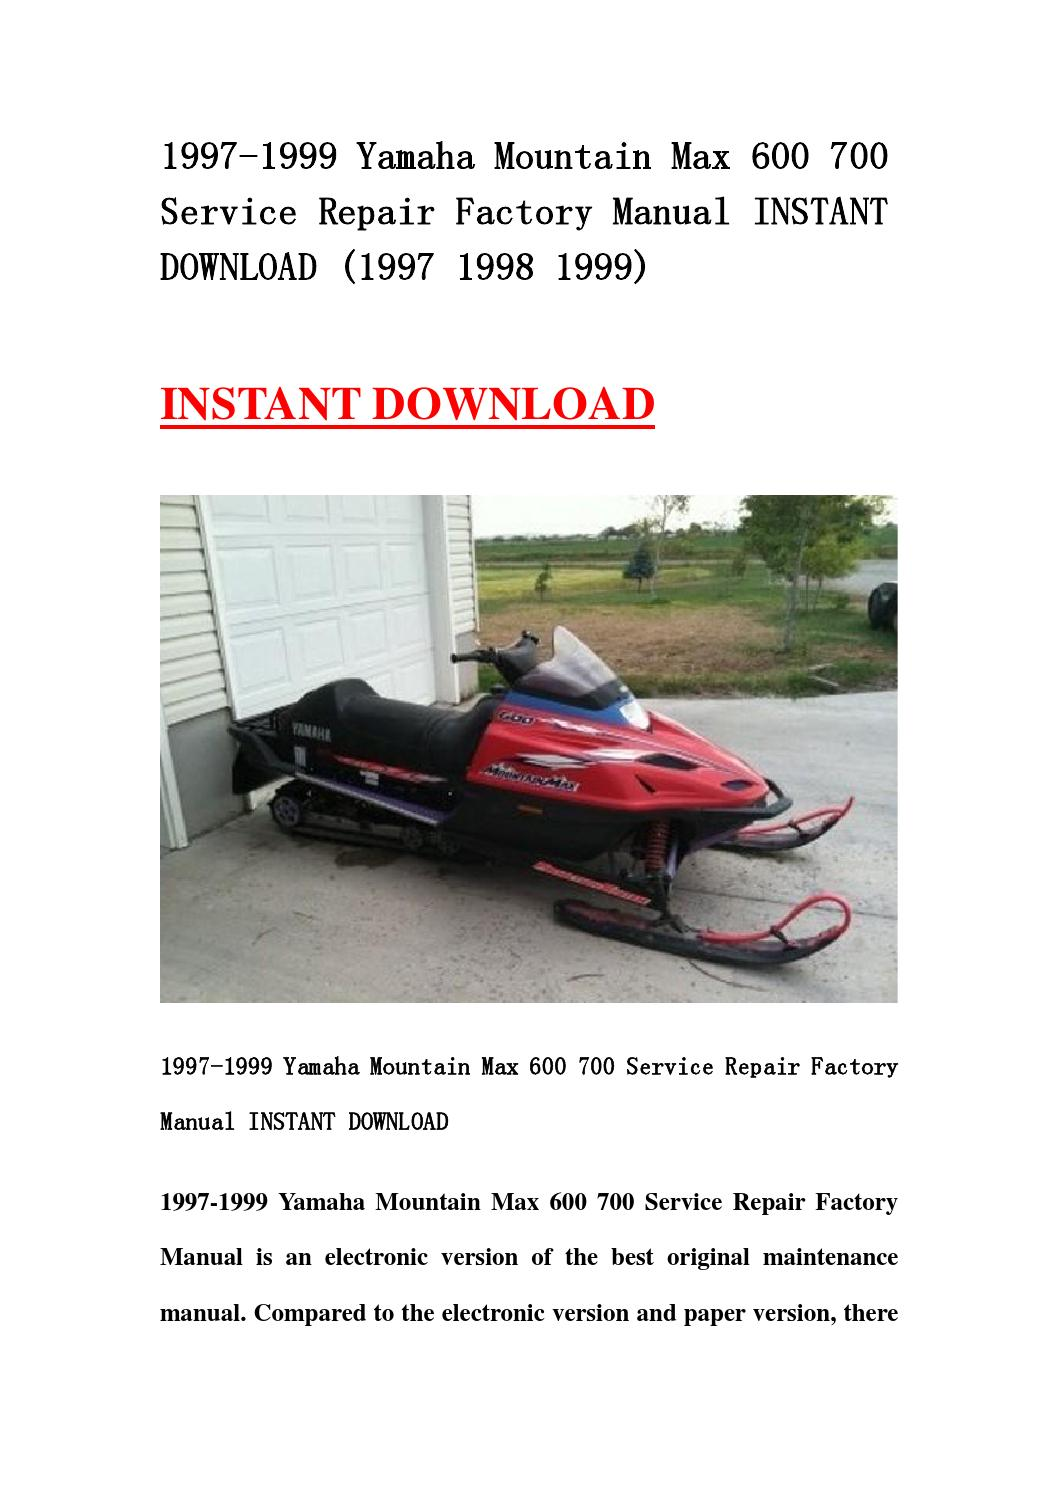 wiring diagrams engine 6, instructional documents operating 1997 yamaha  yzf750 repair manual learn more about product, explained diagrams, etc